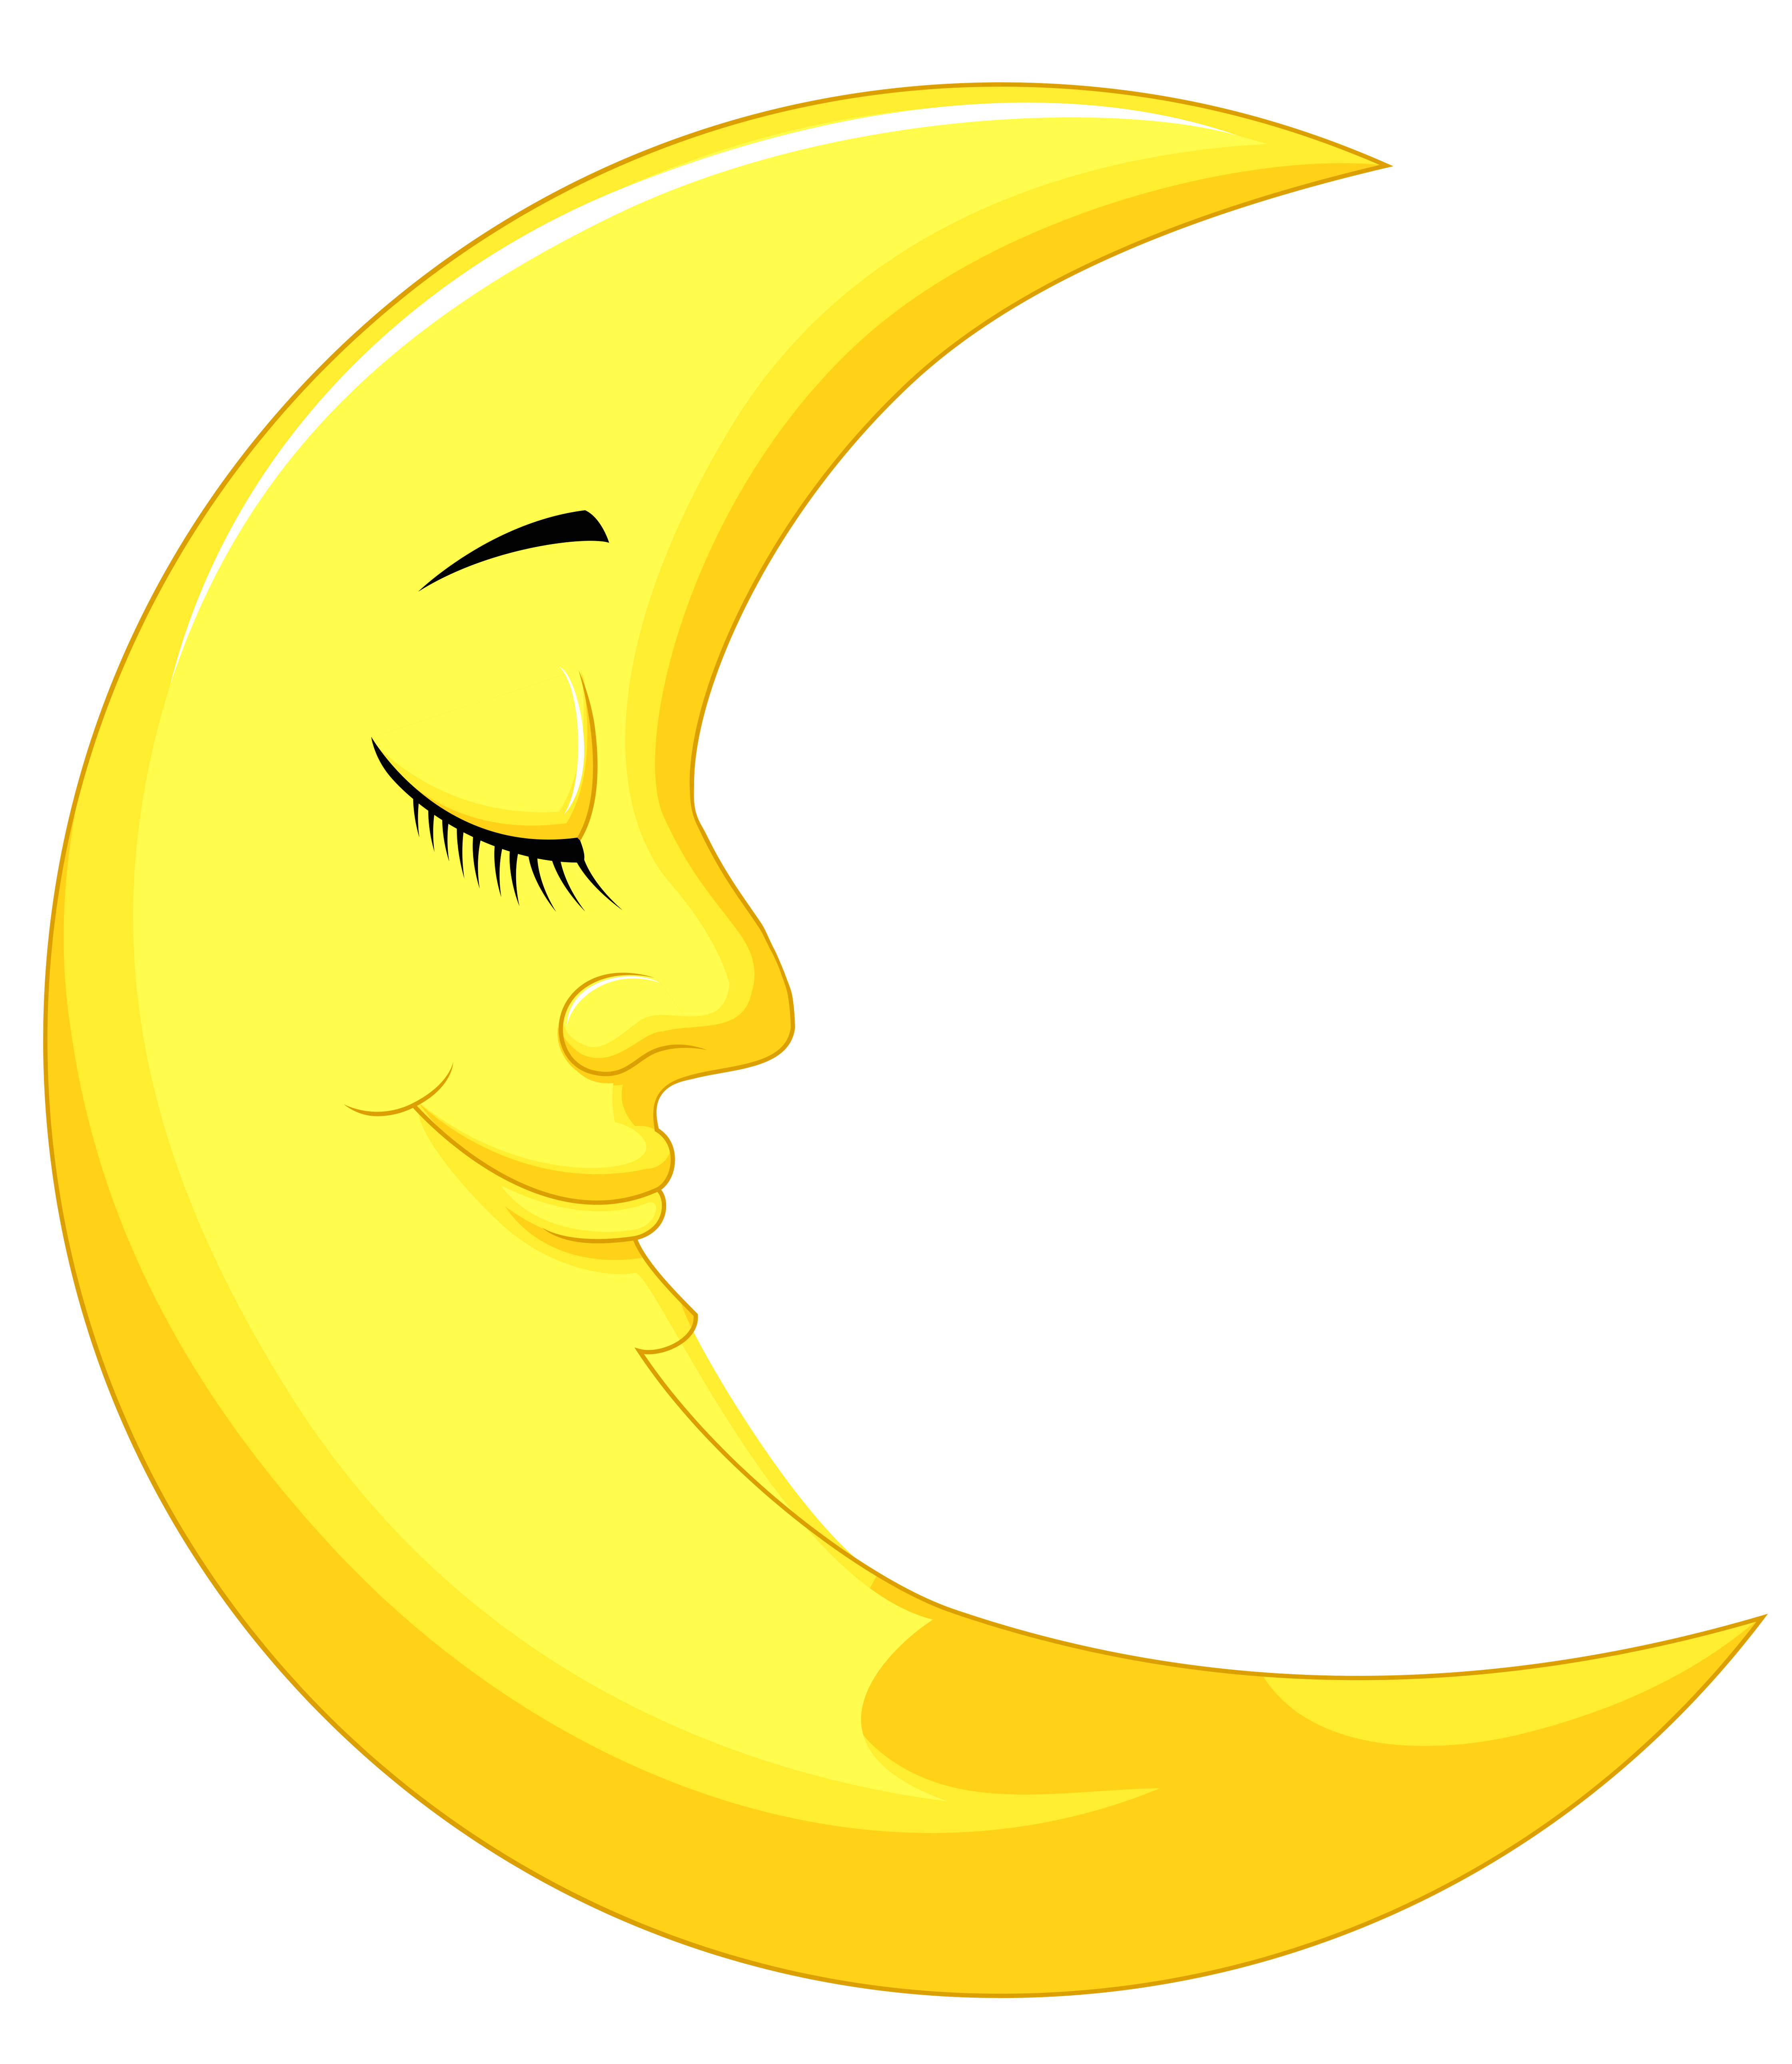 Lunar clipart bulan Images Free graphics Free clipart